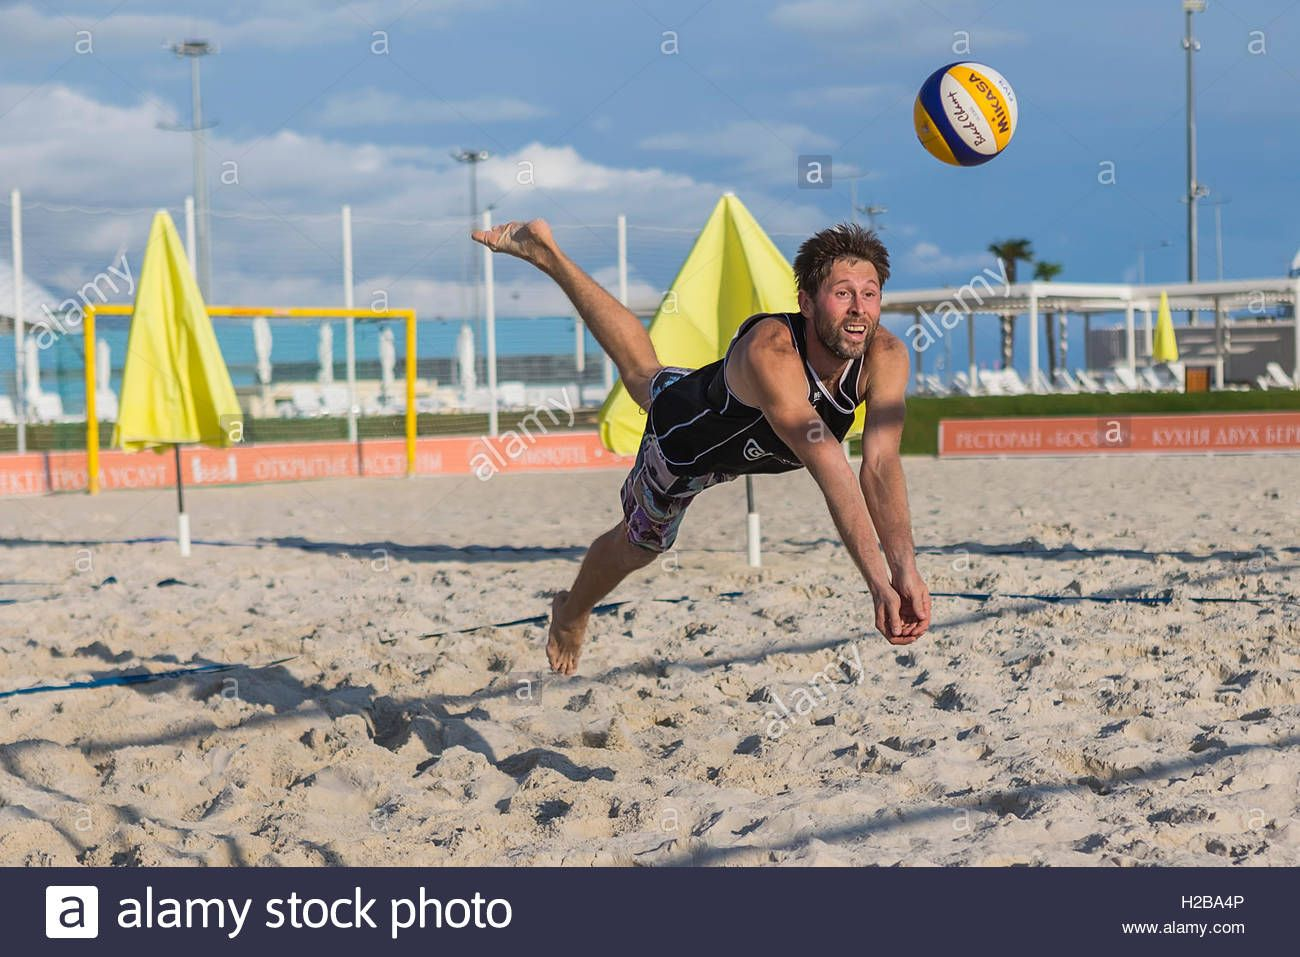 Download This Stock Image Young Man In Motion Plays In Beach Volleyball H2ba4p From Alamy S Library Of Millions Of High Beach Volleyball Photo Stock Photos